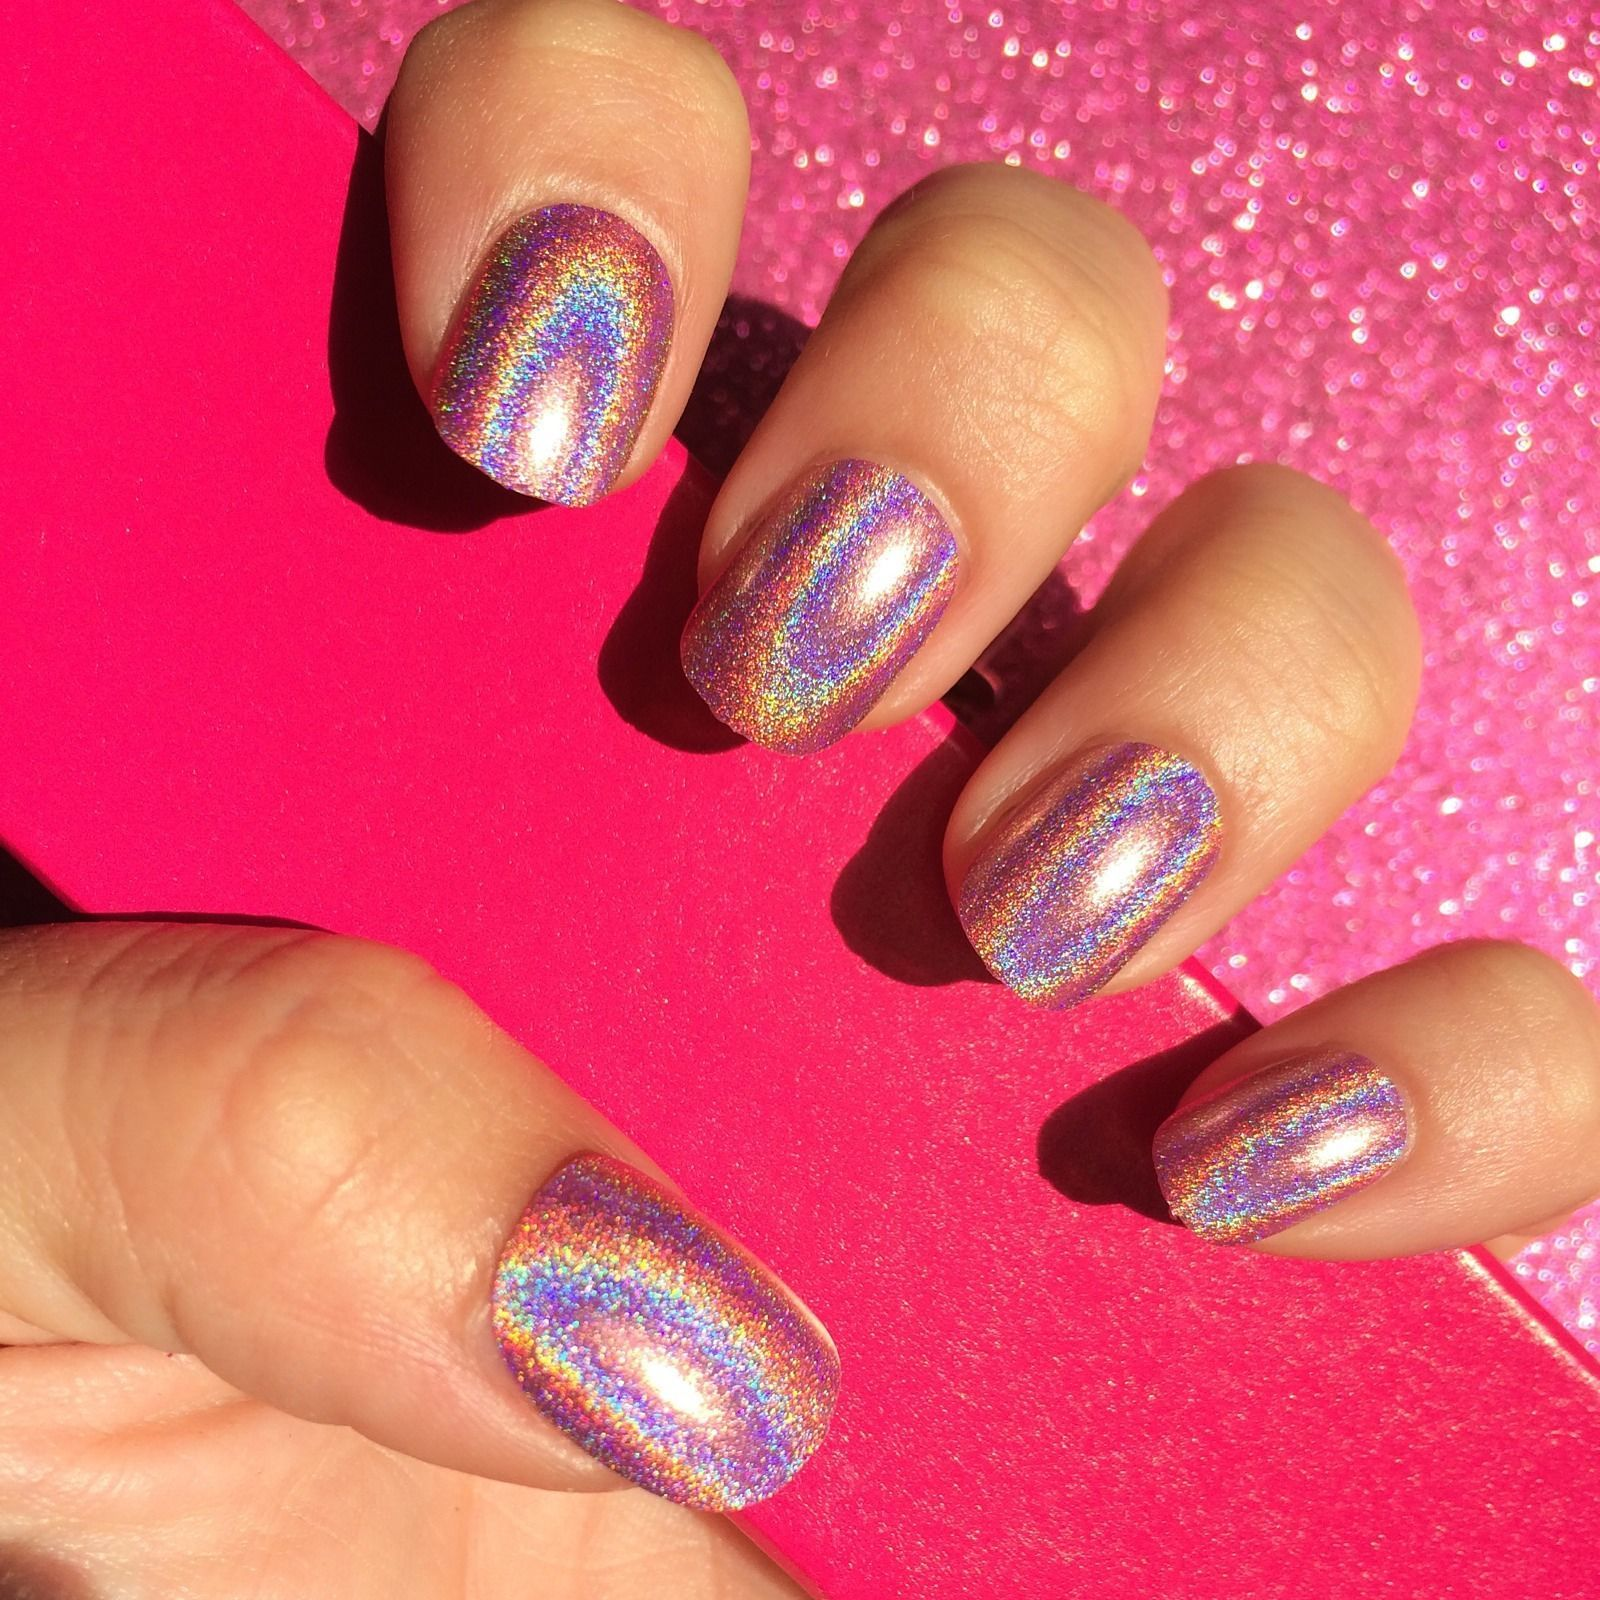 Short Press On Nails Holographic Pink Stick On Nails For Sale On Www Nailituk Co Uk